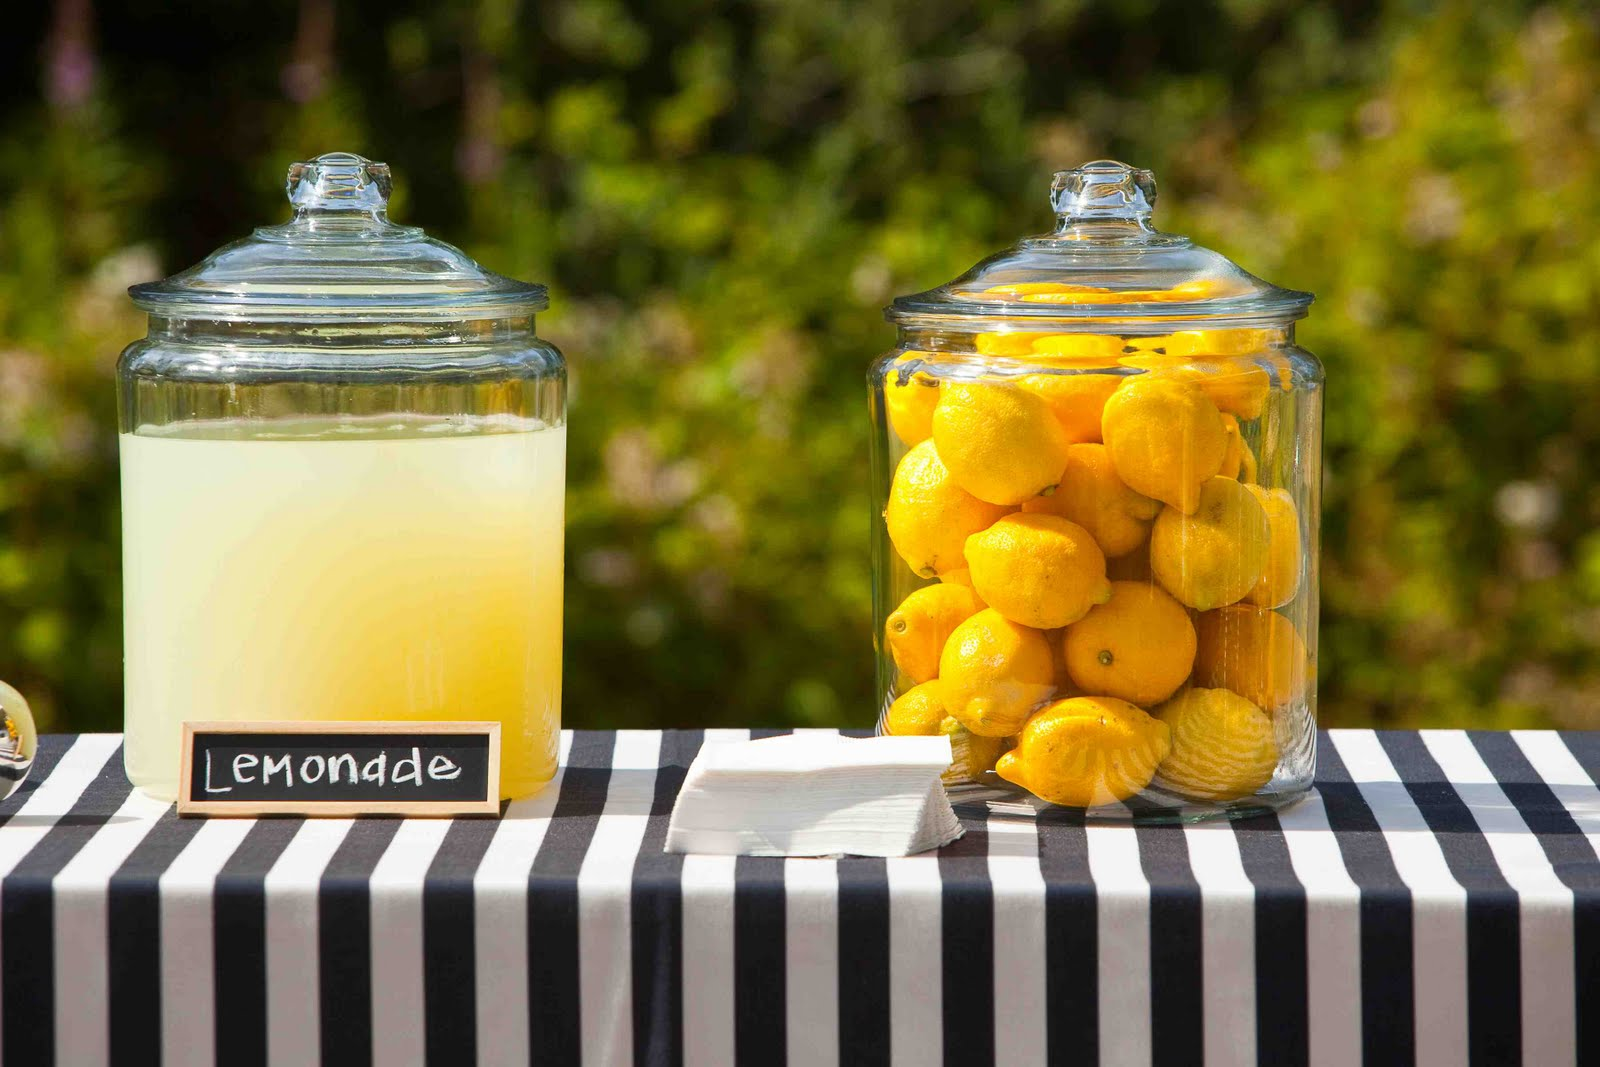 When life gives you lemons don't sell them without a permit